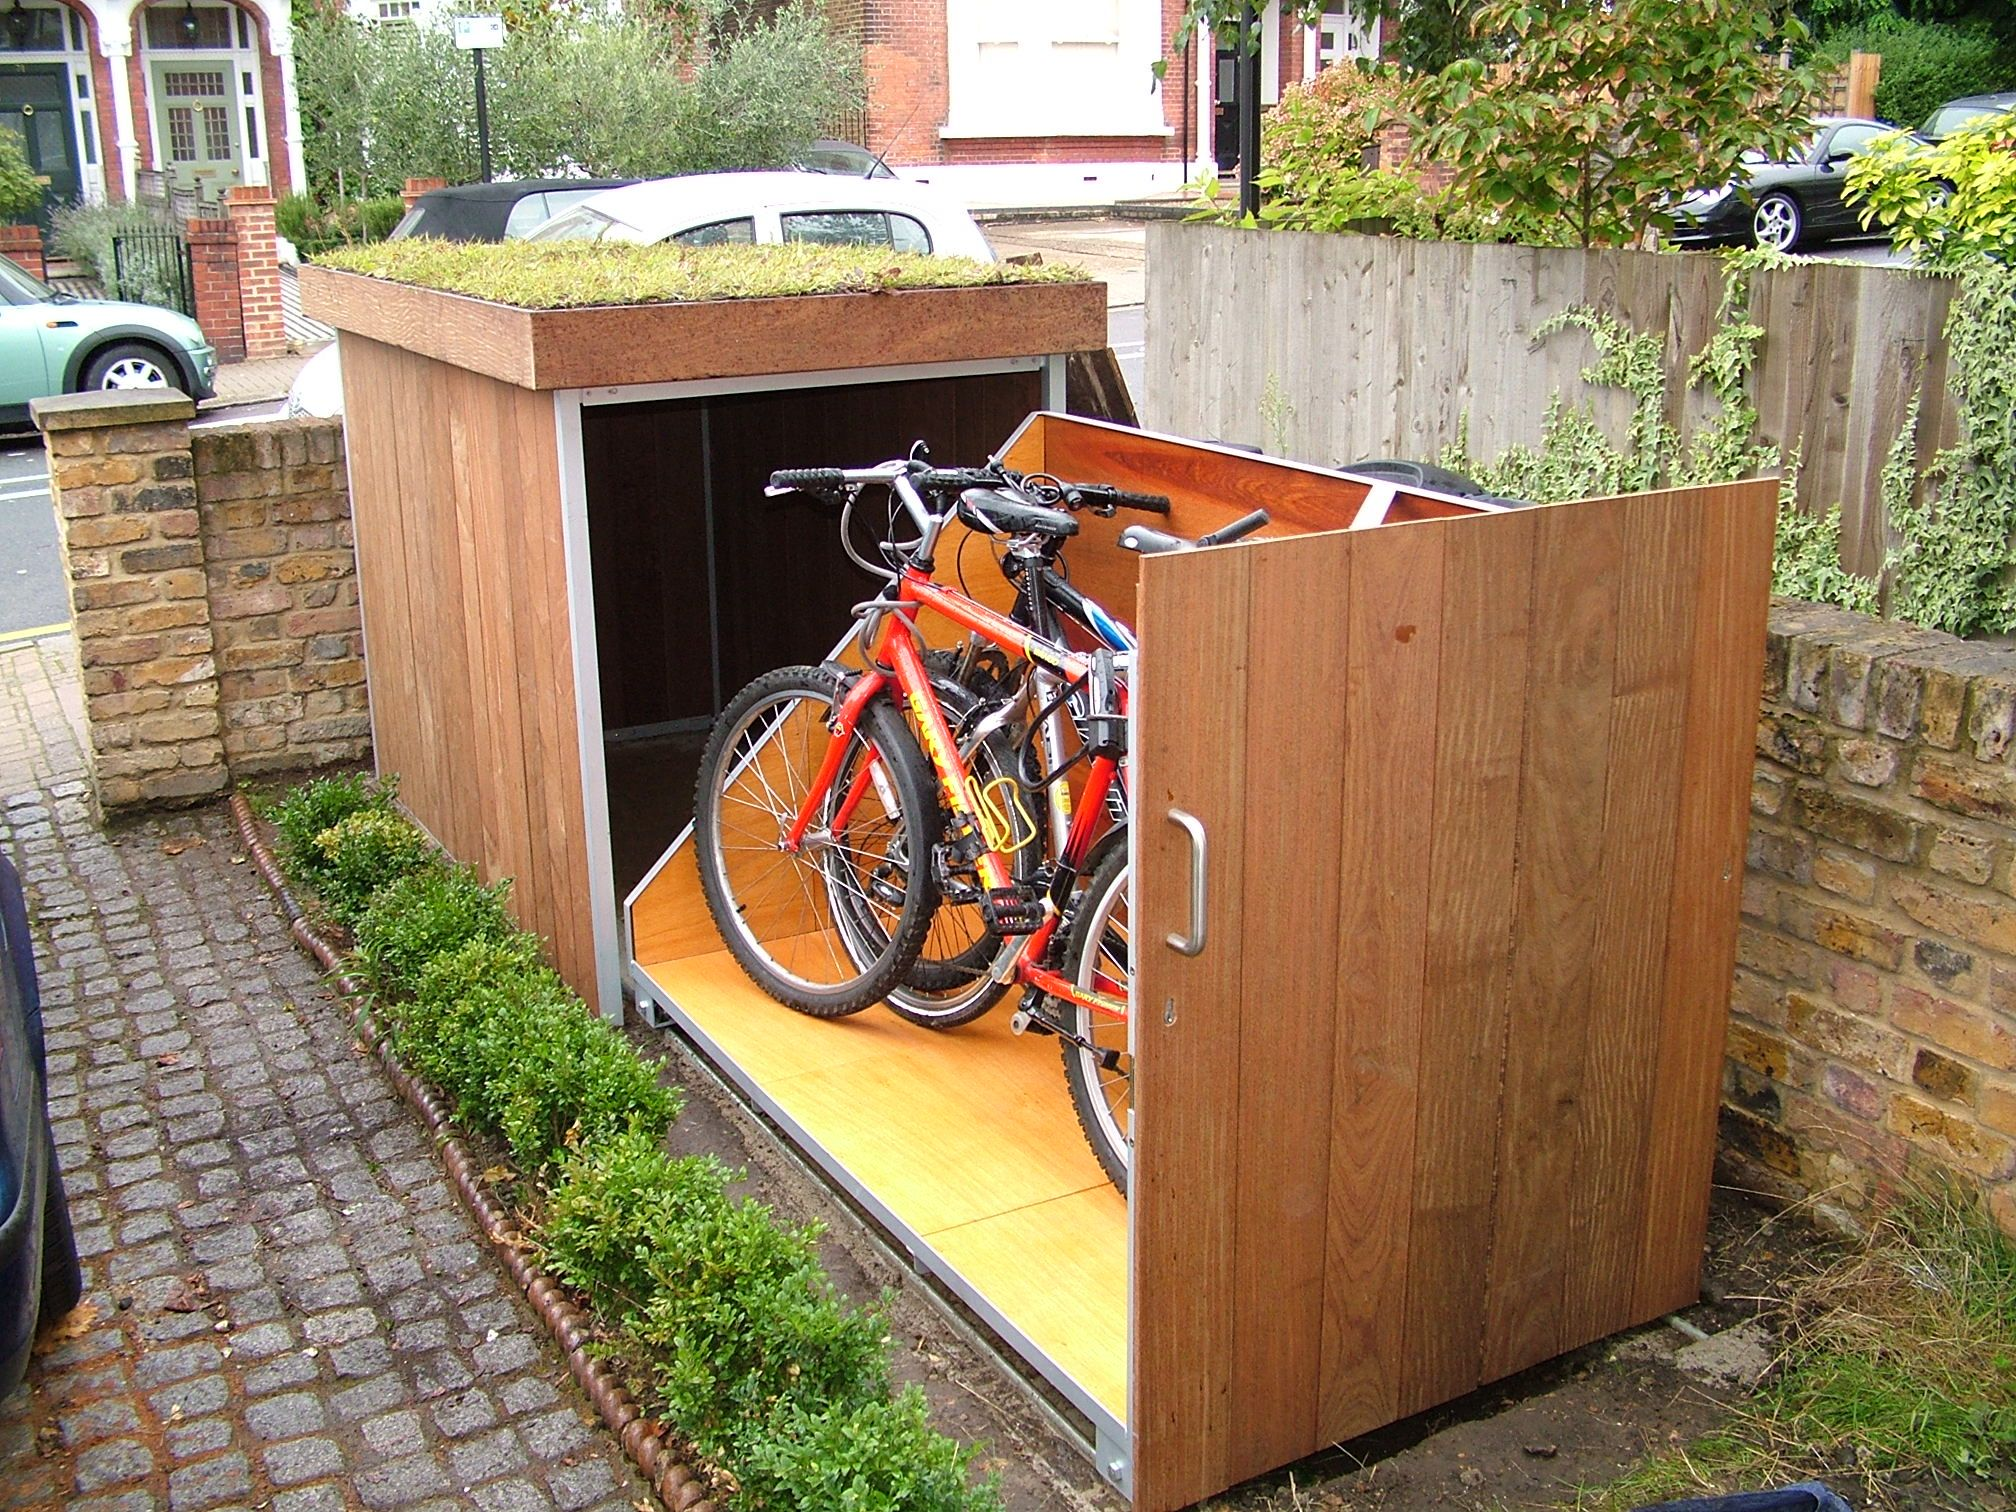 Bike Storage Backyard Storage Outdoor Bike Storage Garden Storage